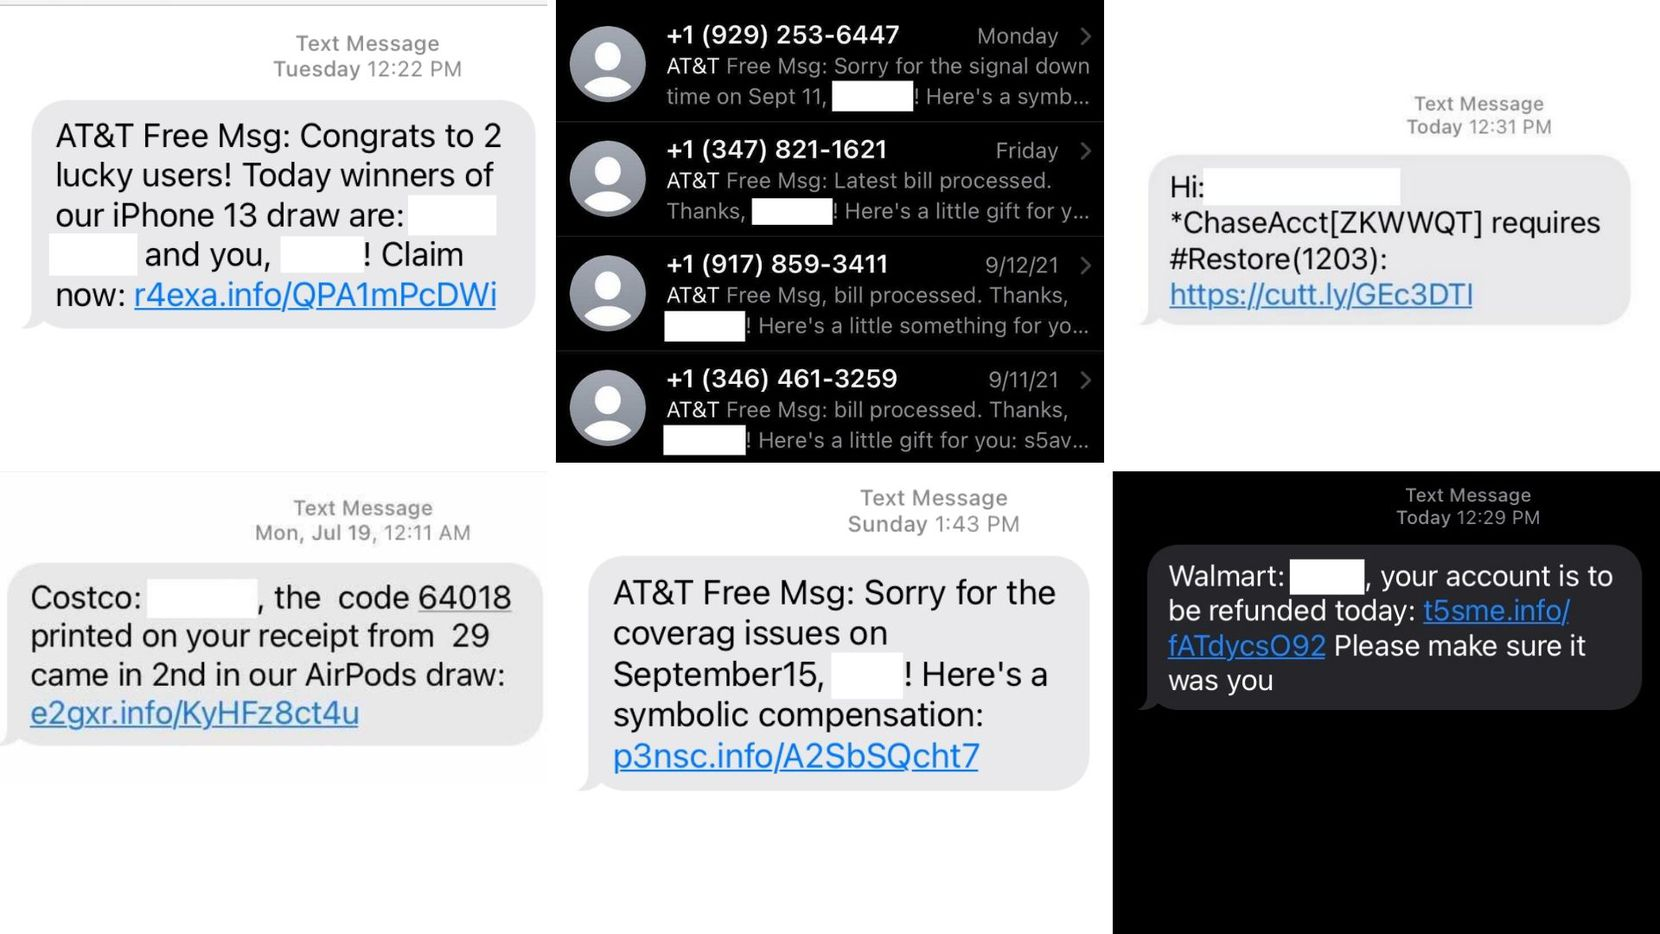 Texans are receiving more spam texts this year as scammers attempt to circumvent U.S. crackdown on robocalls.